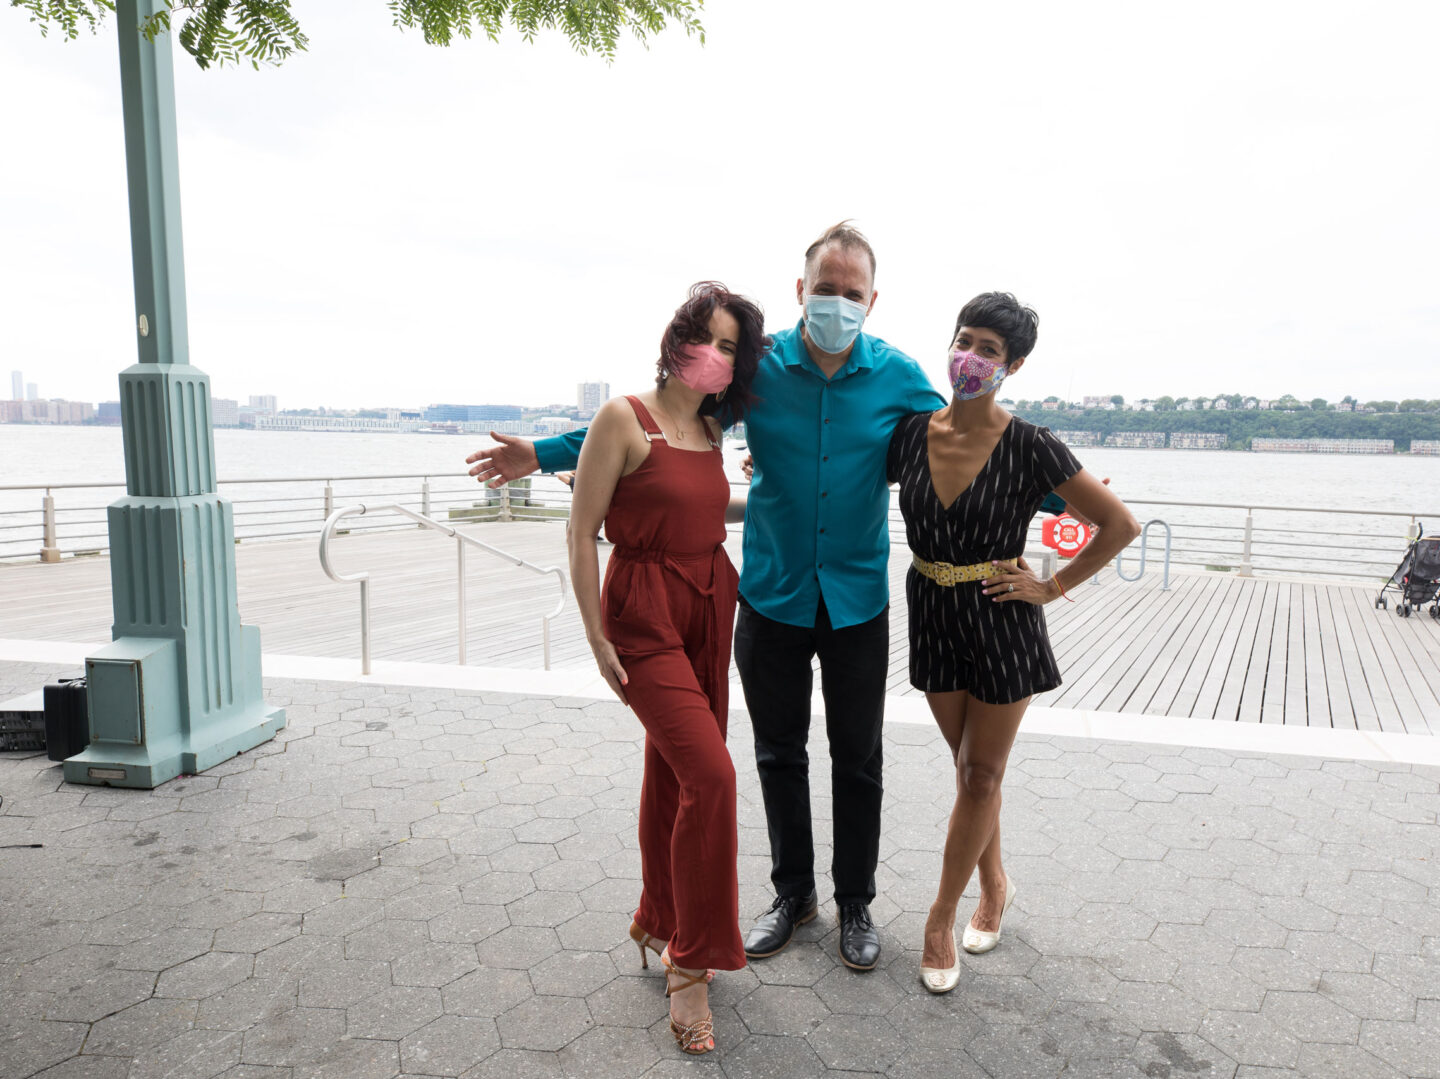 Talia Castro-Pozo and dancers gather for a photo before kicking off Sunset Salsa at Hudson River Park